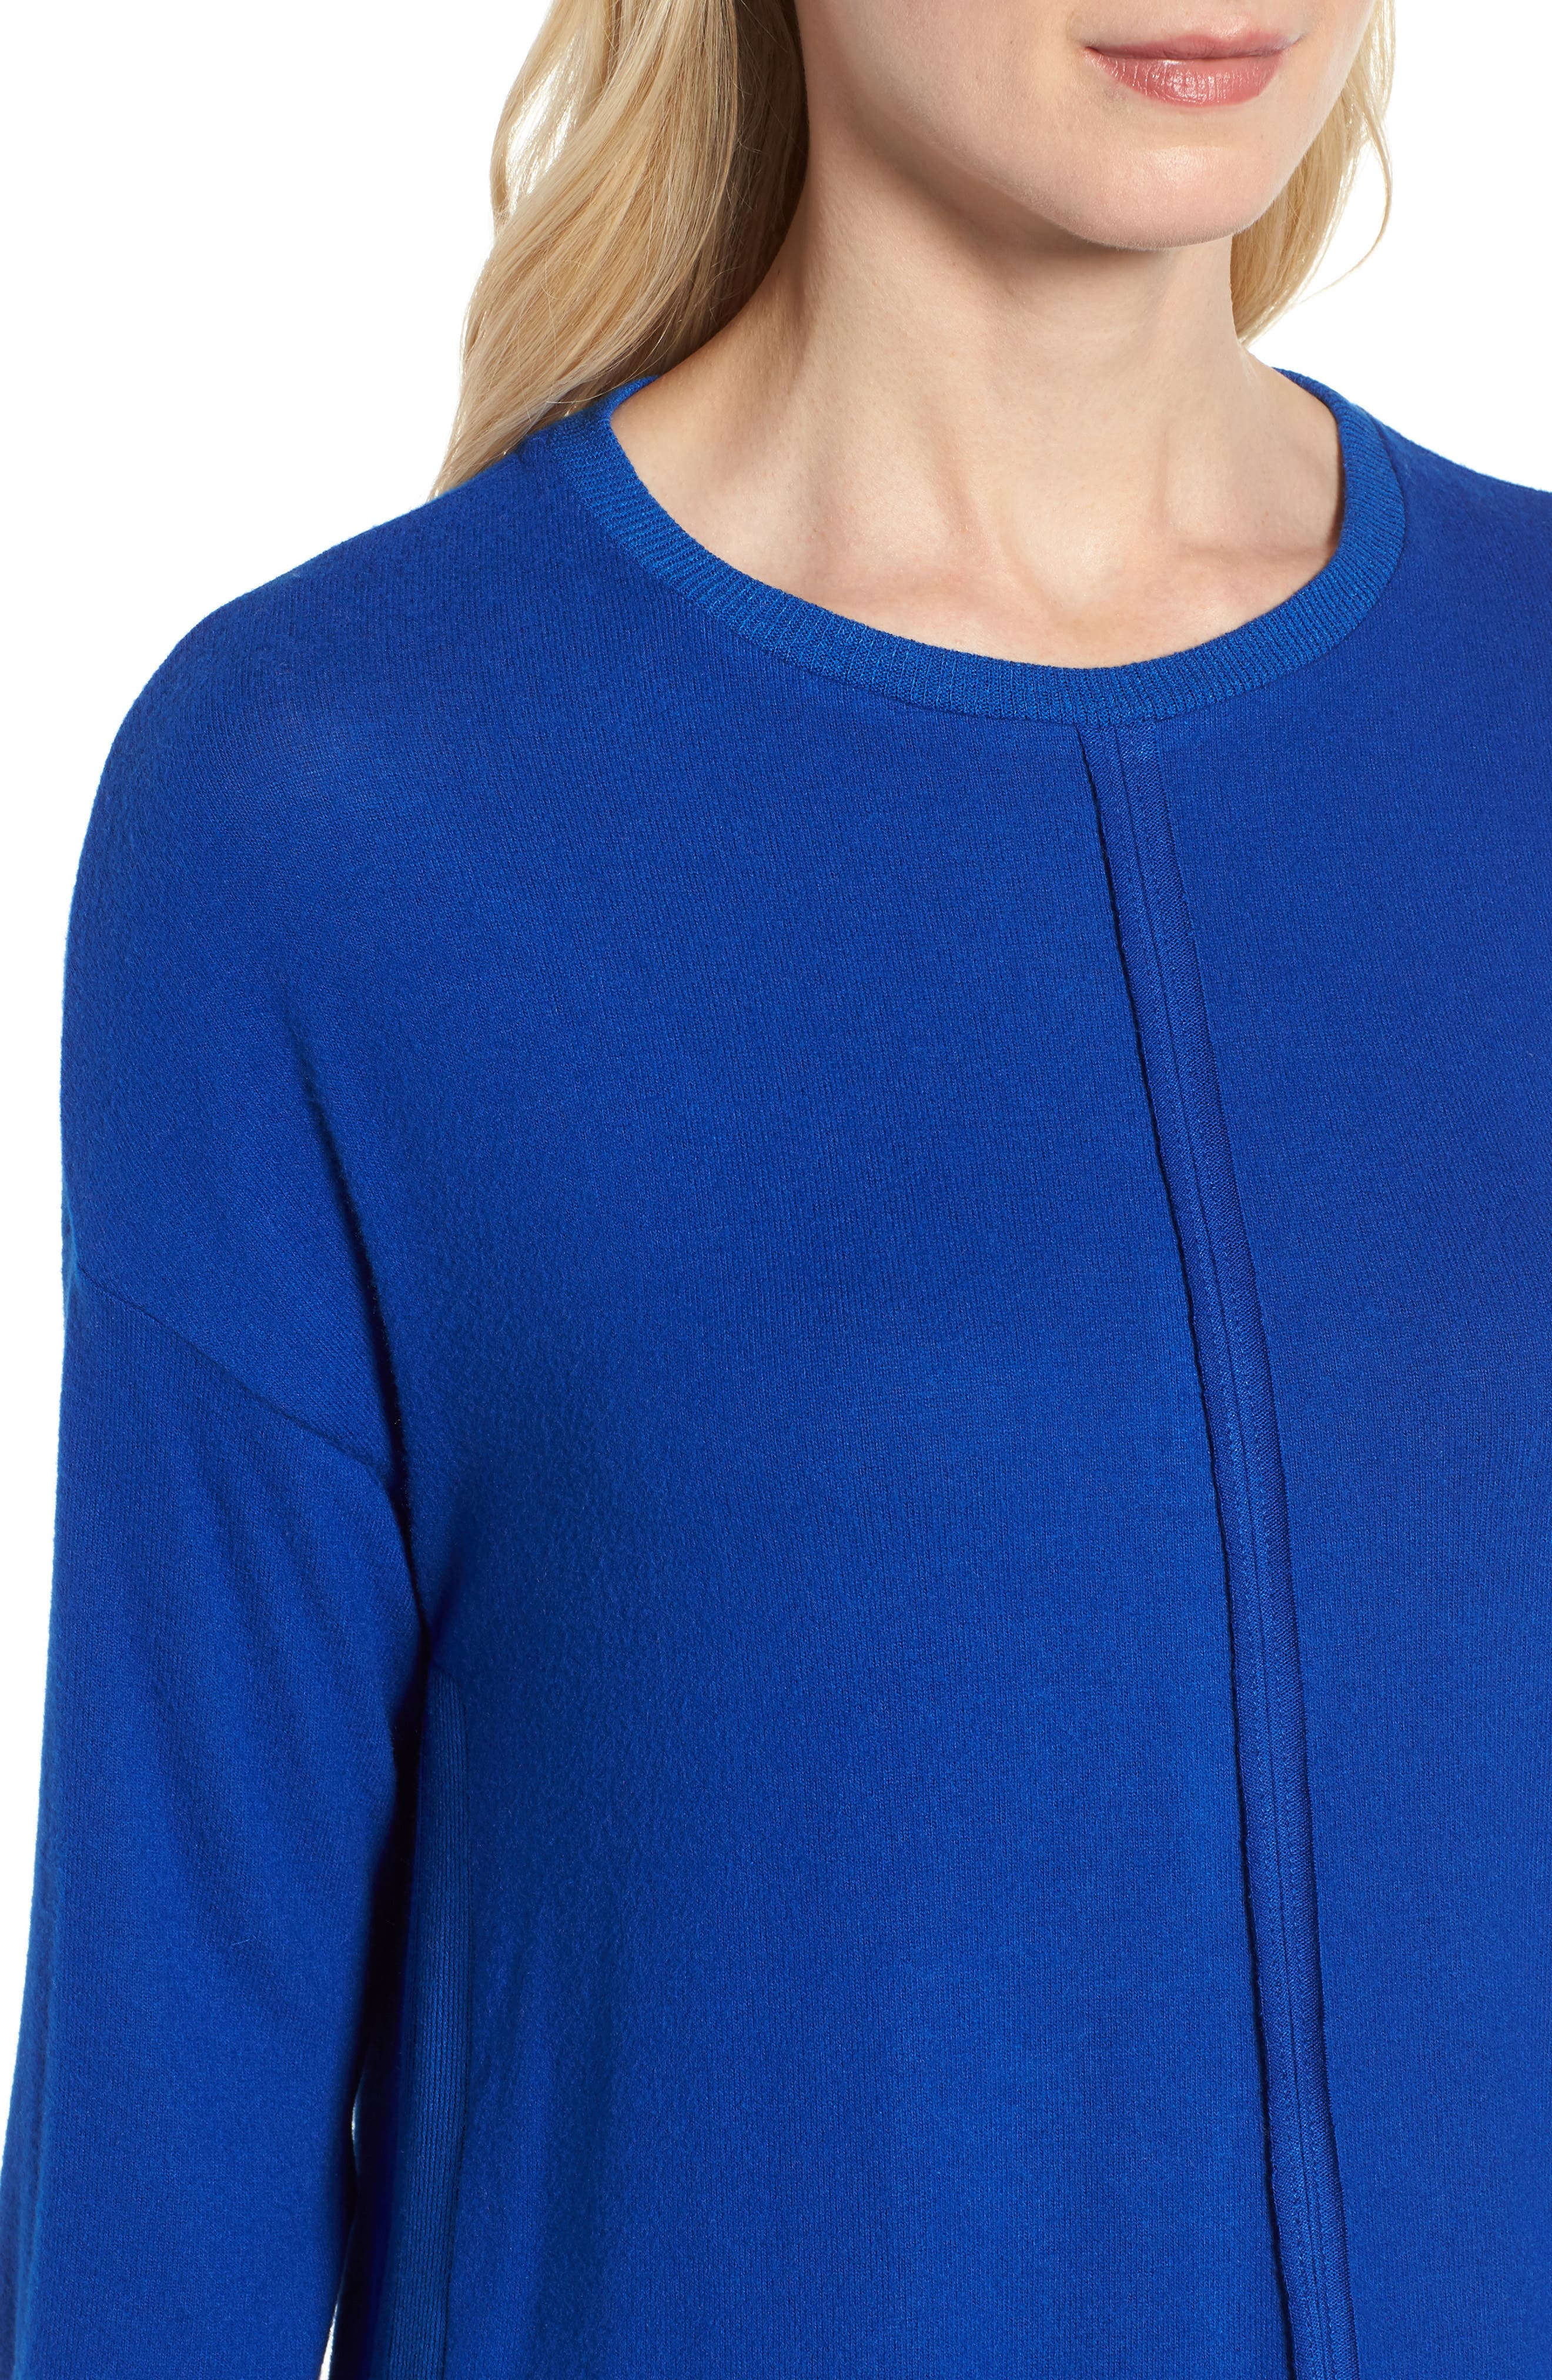 Cozy Fleece Tunic,                             Alternate thumbnail 4, color,                             Blue Surf